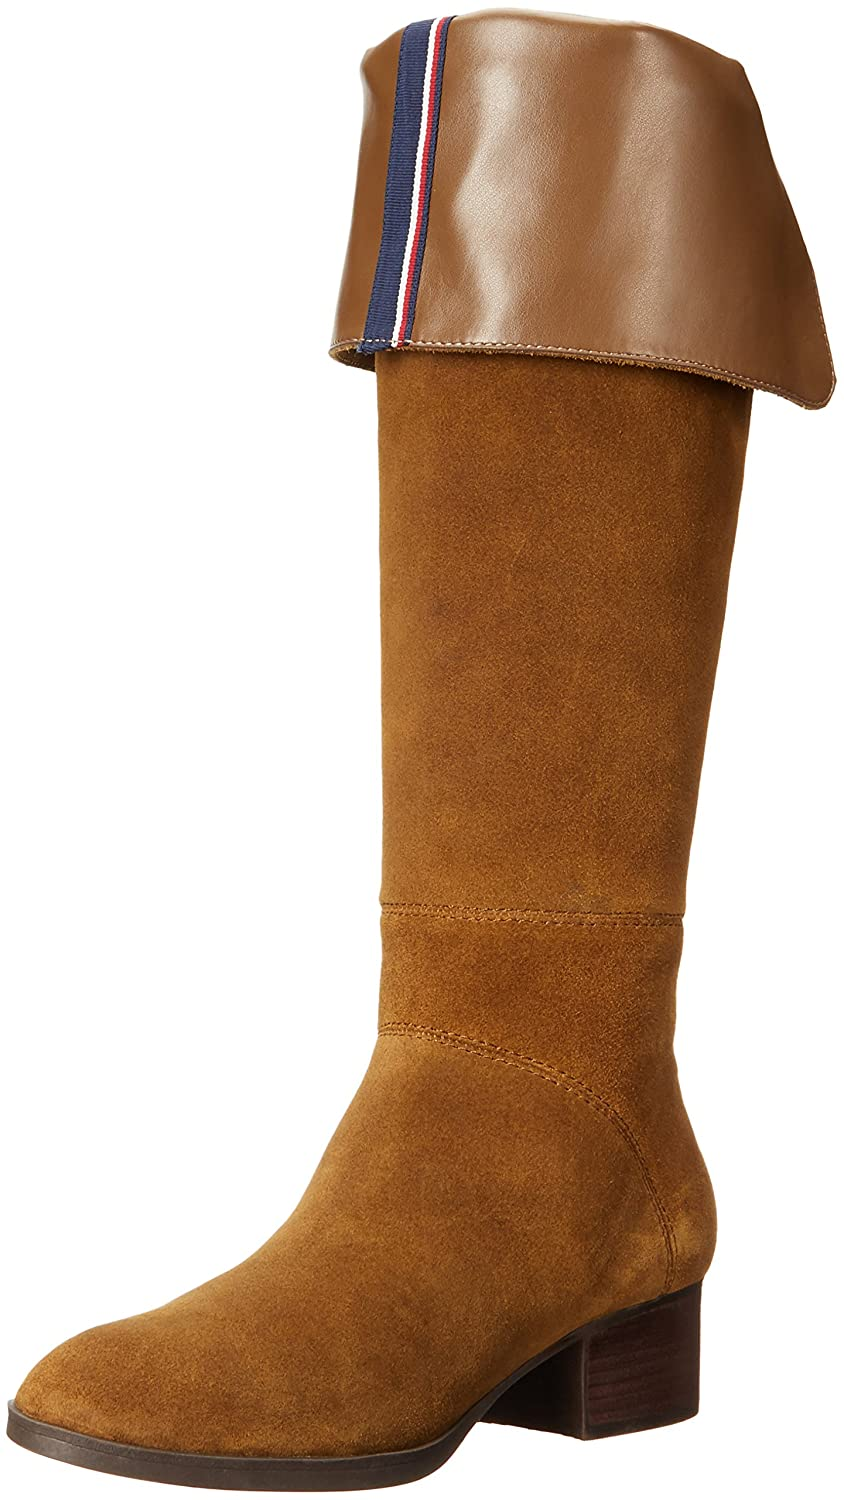 Tommy Hilfiger Women's Gianna Western Boot B01LX13S7L 7 B(M) US|Brown